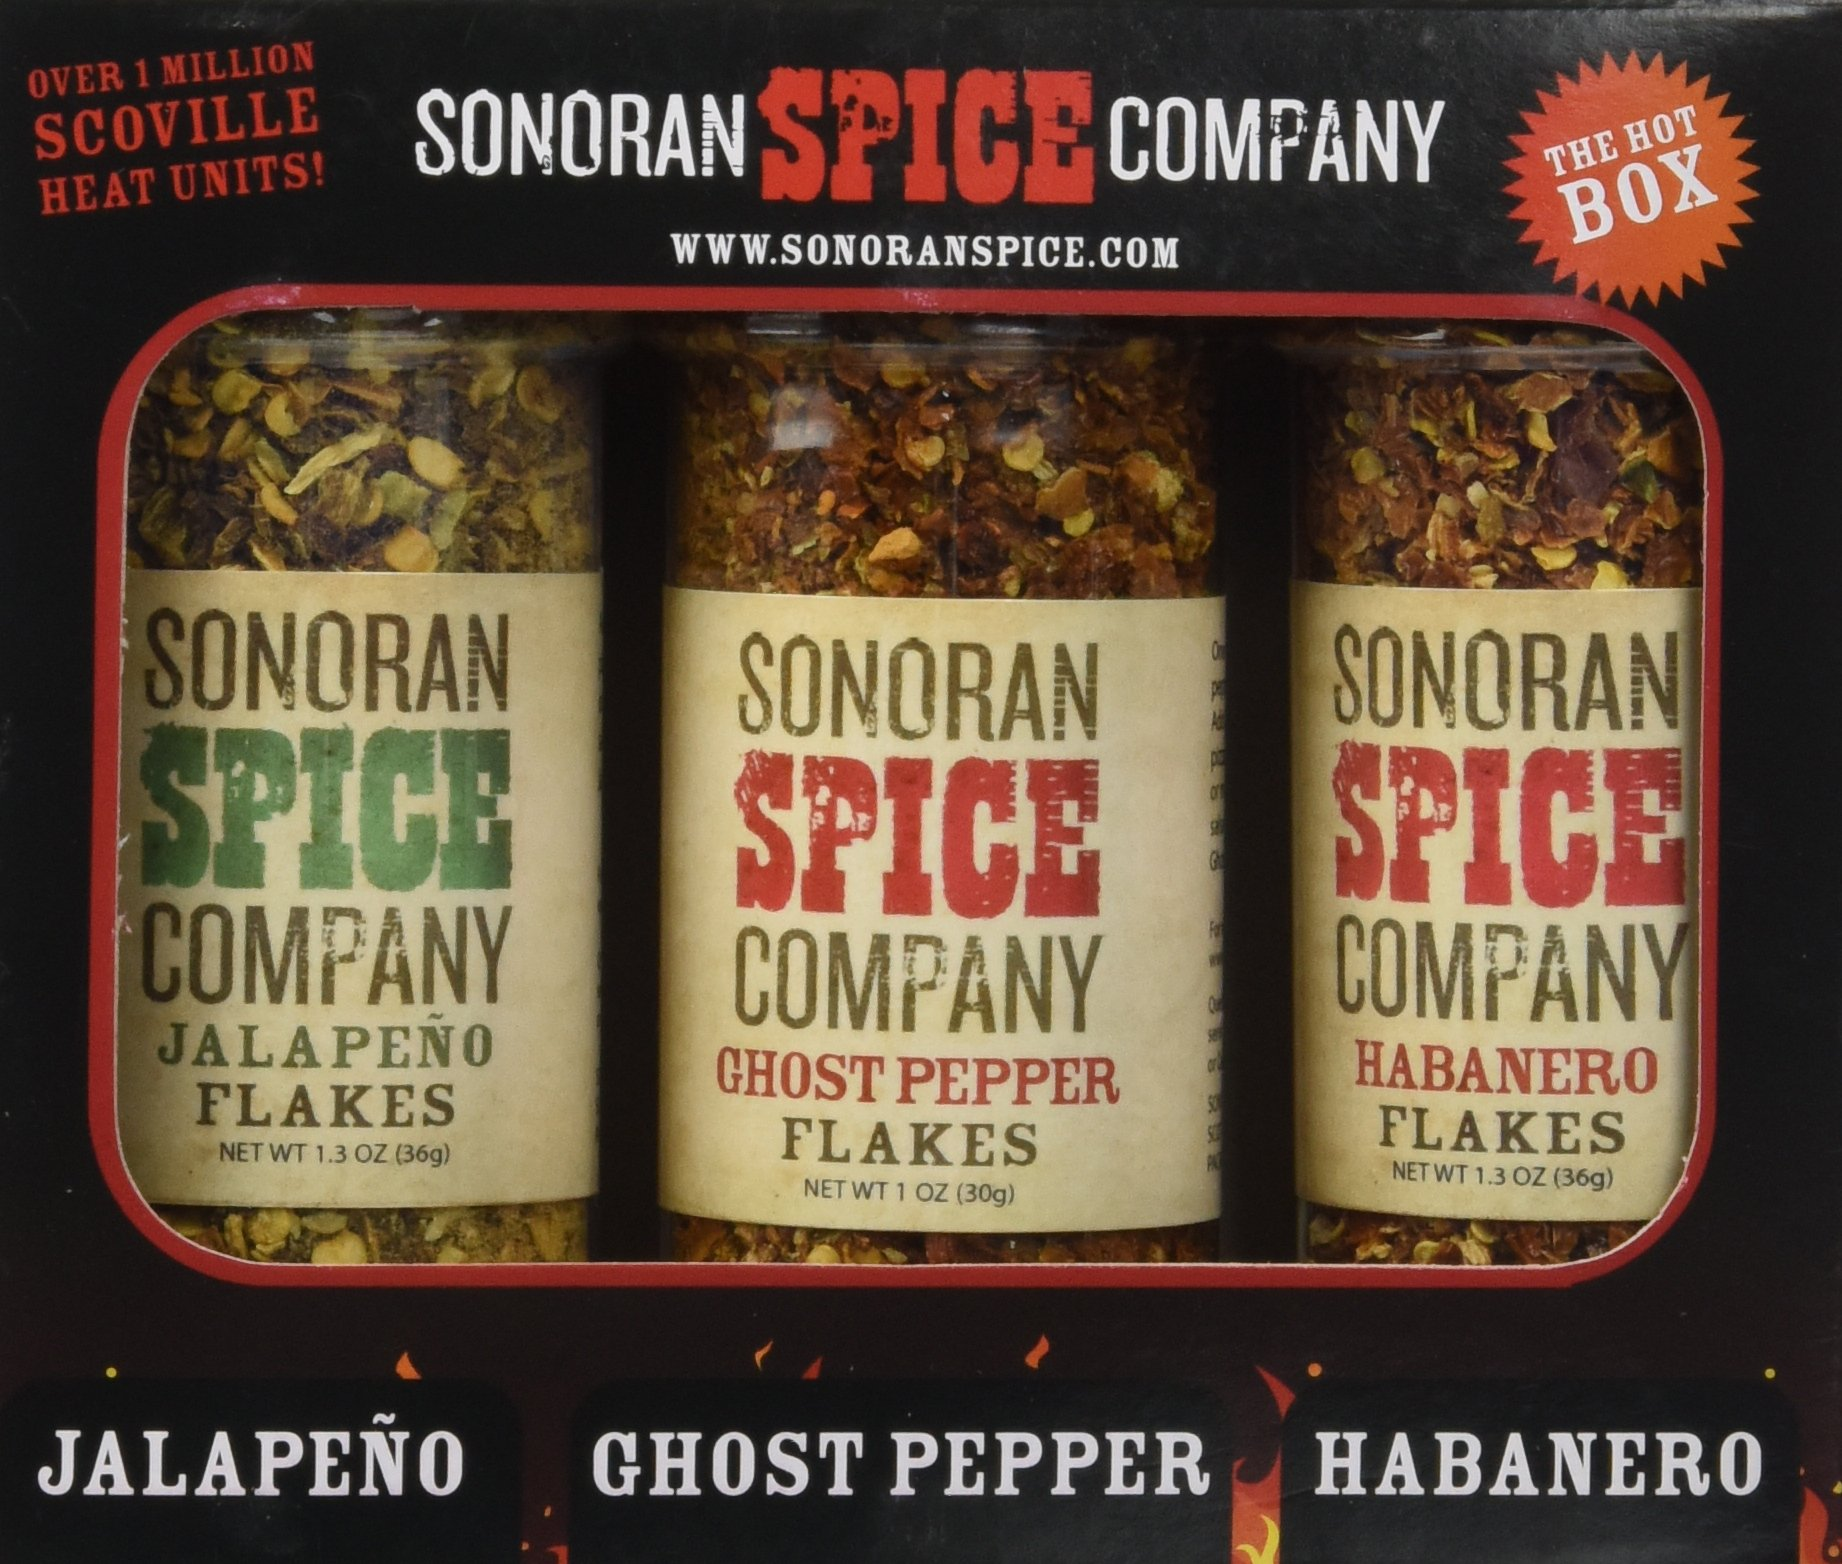 Sonoran Spice Ghost Pepper - Habanero - Jalapeno Flakes 3 Pack